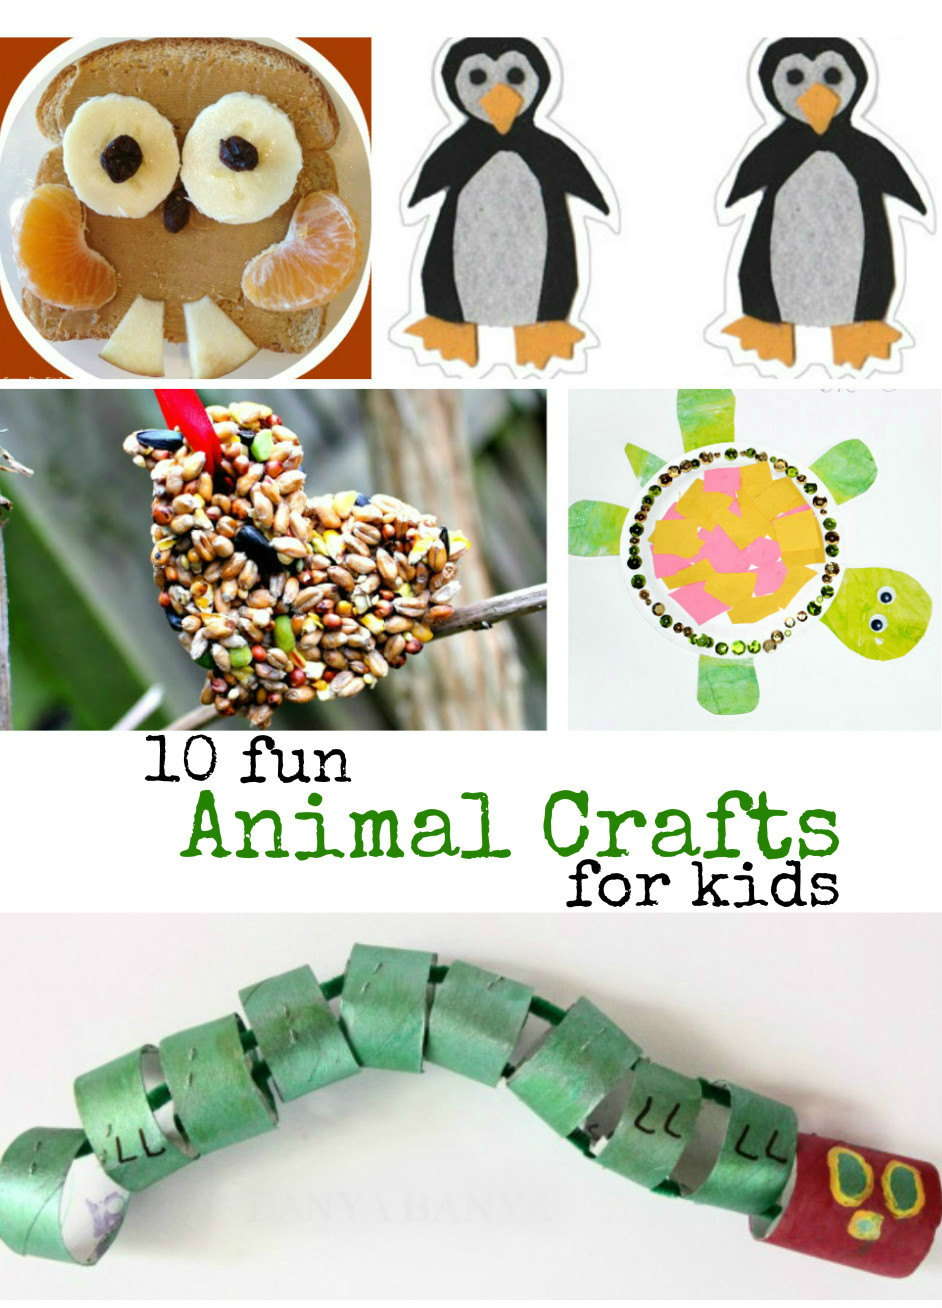 10 fun animal crafts for kids